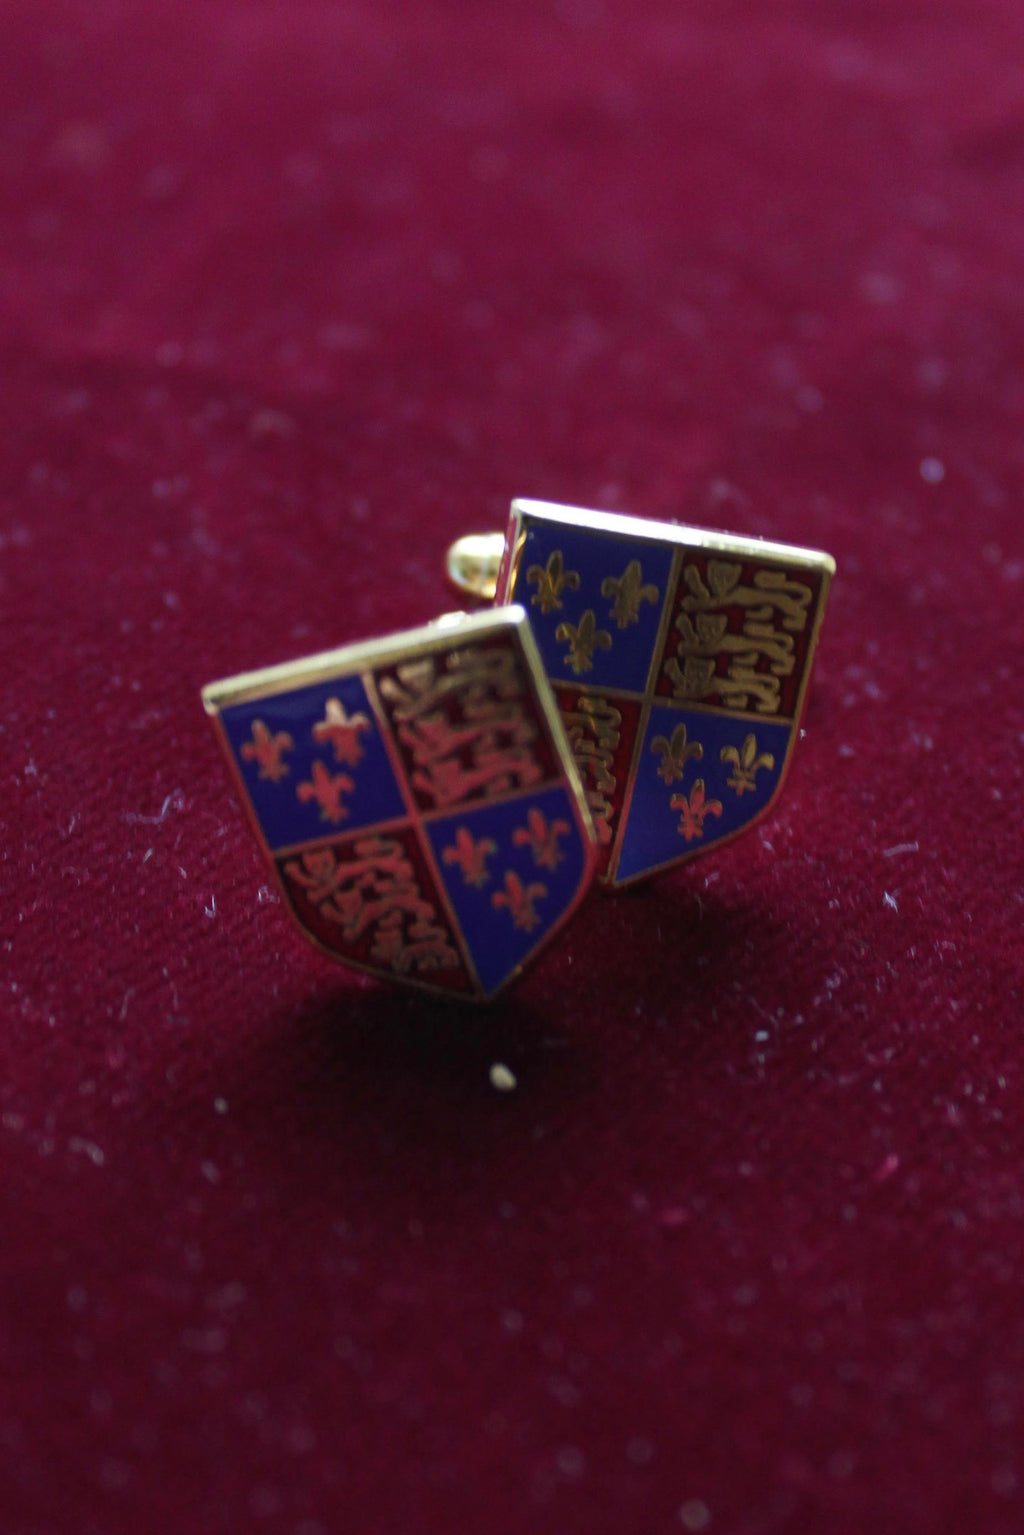 Tudor Royal Coat of Arms Cufflinks